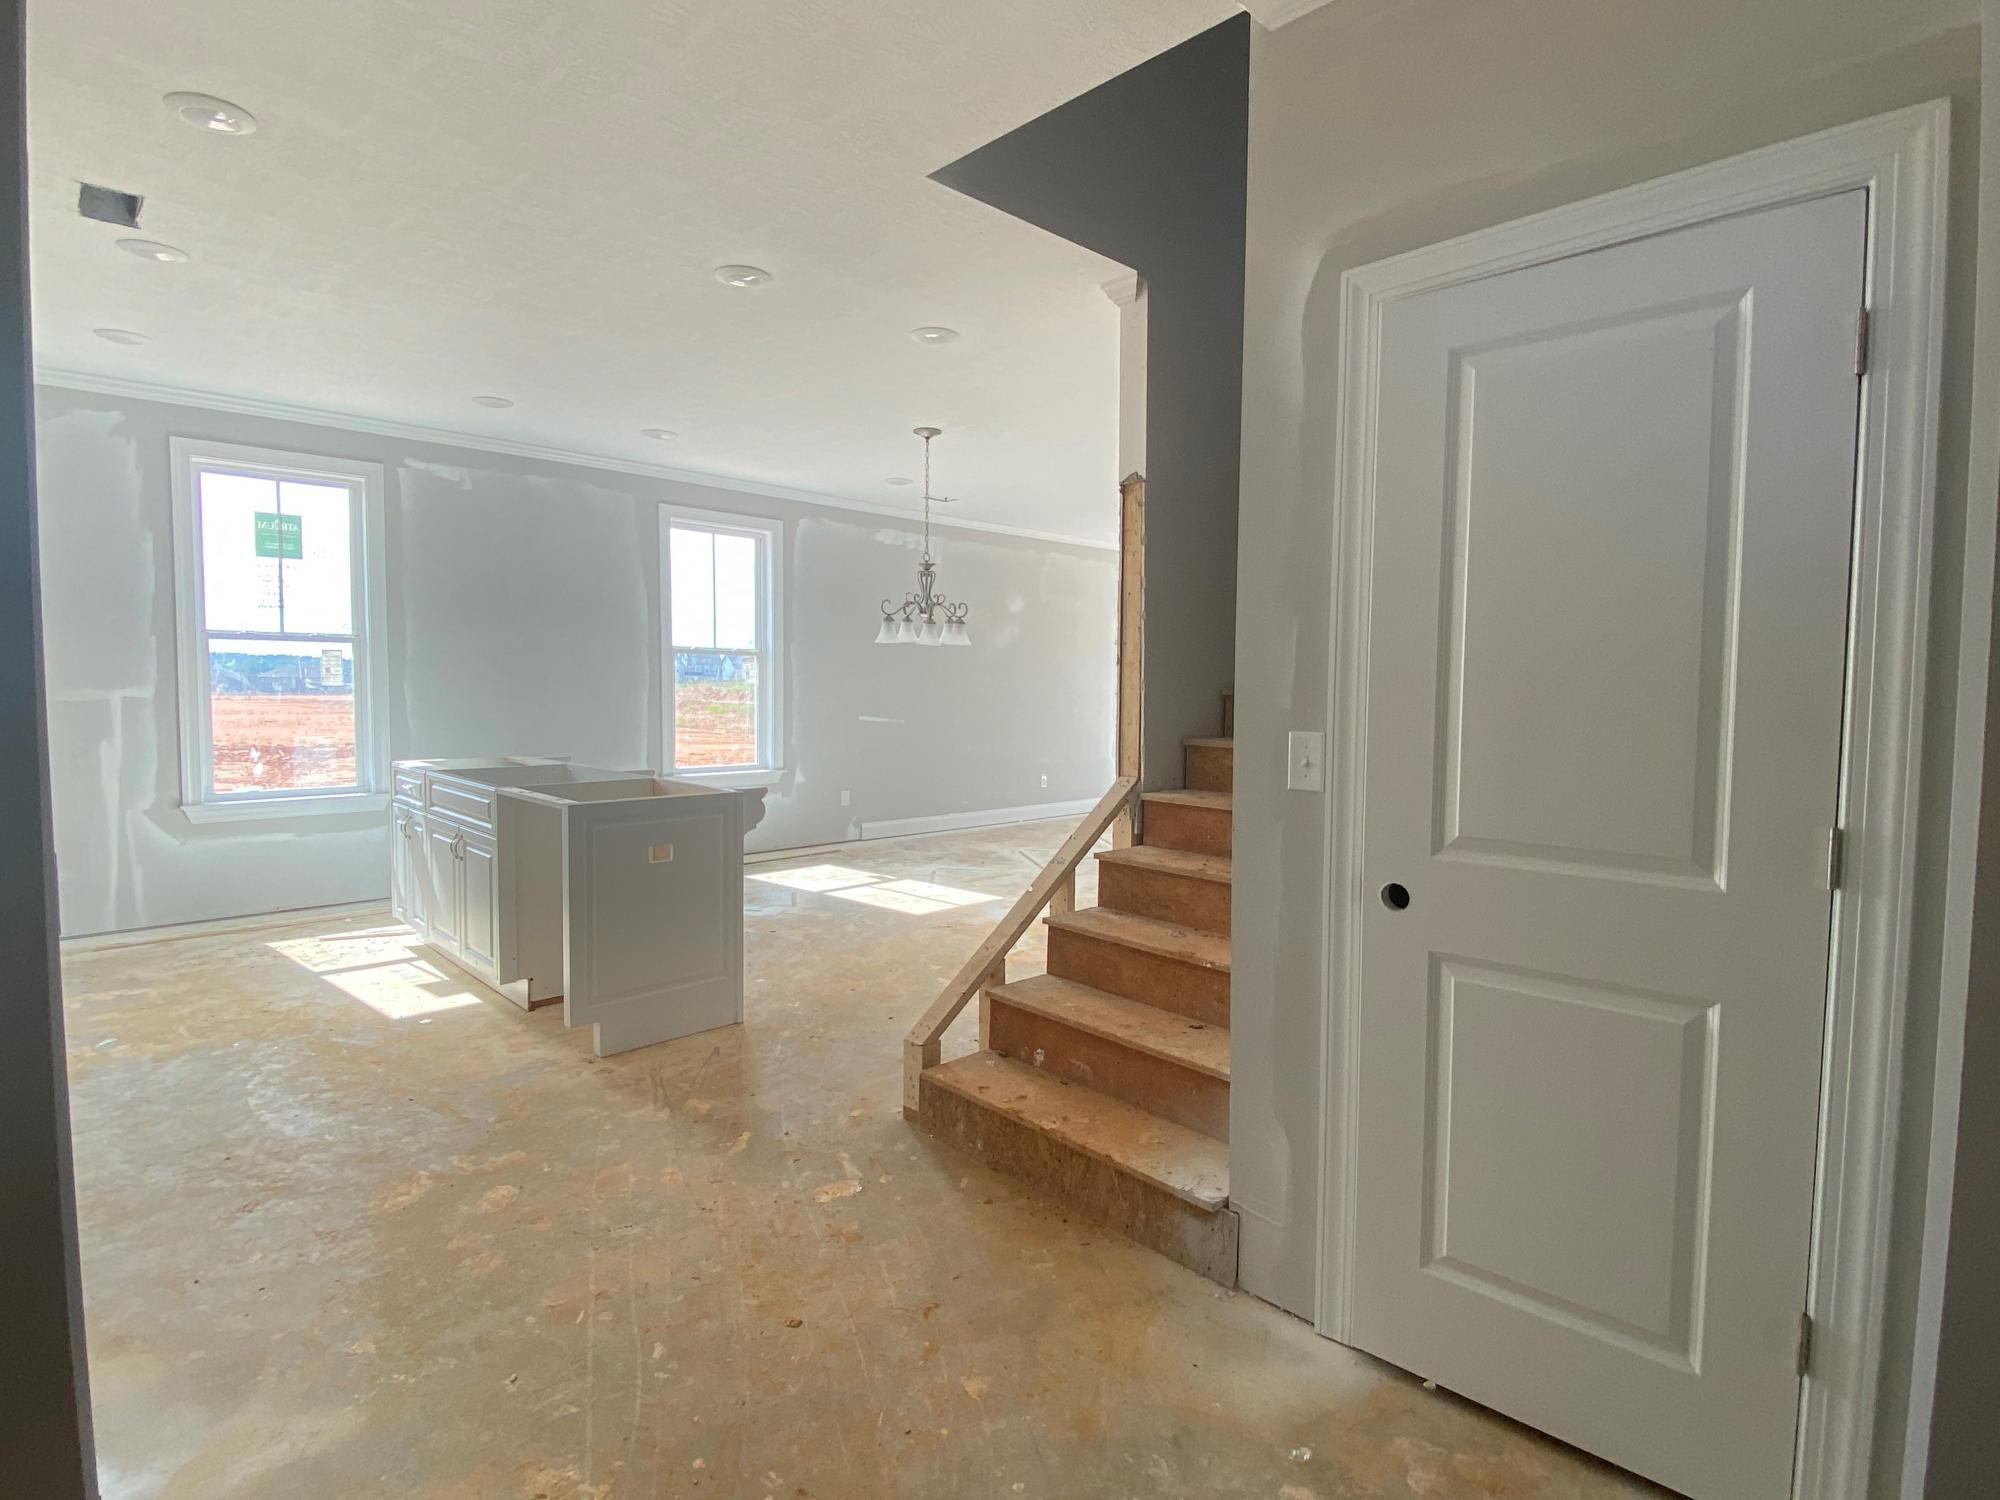 Living Area featured in the Emerson 4 Bedroom Townhome By Ivey Residential in Augusta, GA